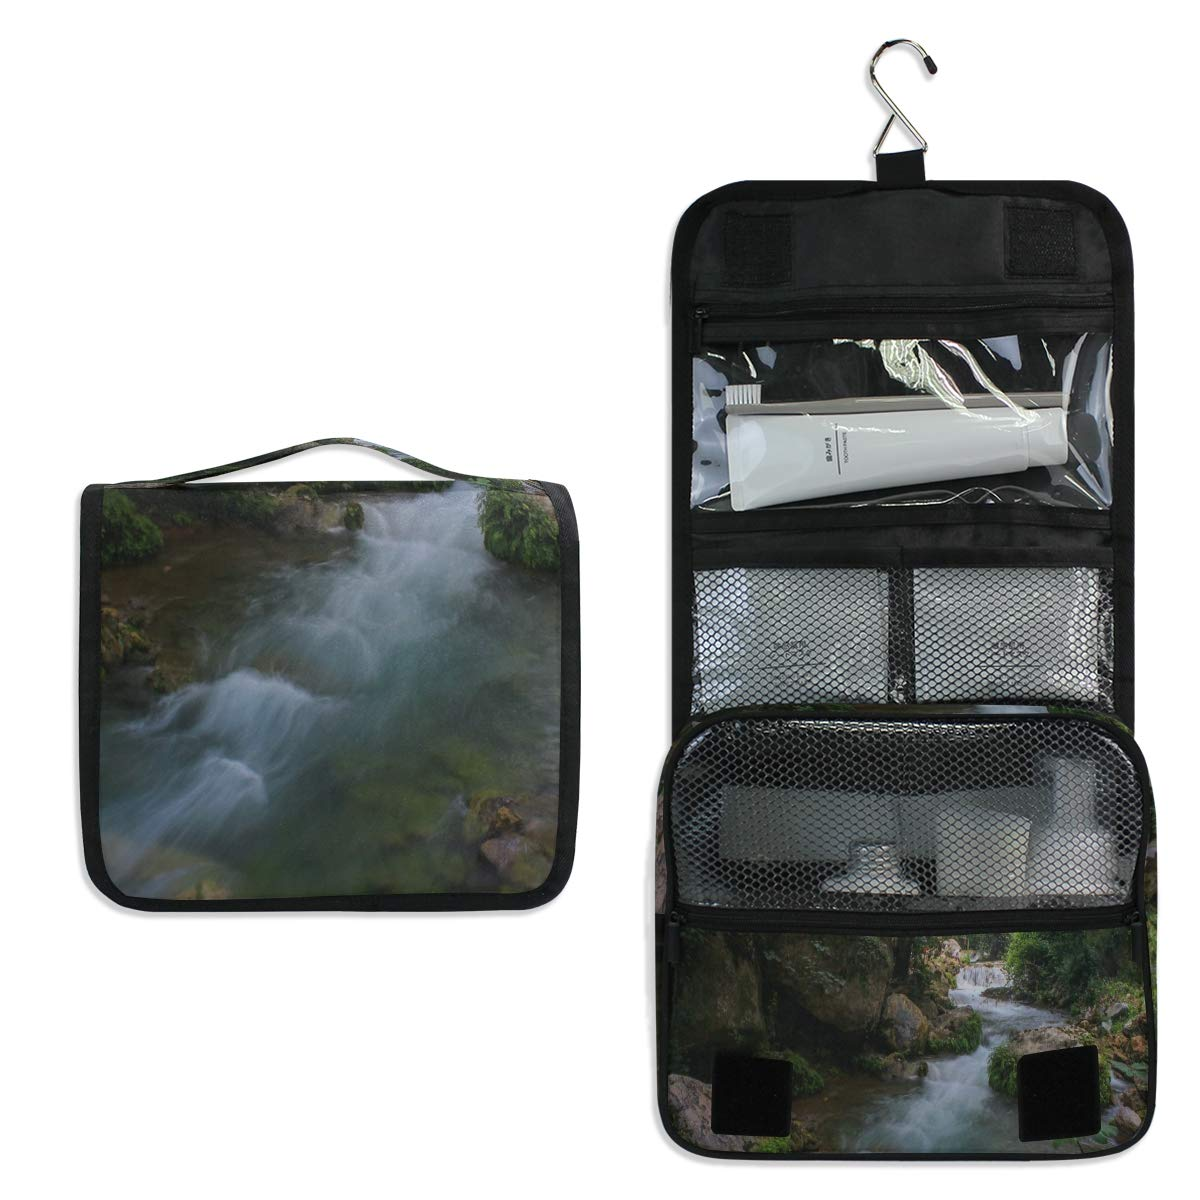 Makeup Bag Cascade Creek Environment Toiletry Bag Travel Cosmetic Organizer Waterproof Wash Bag for Men Women